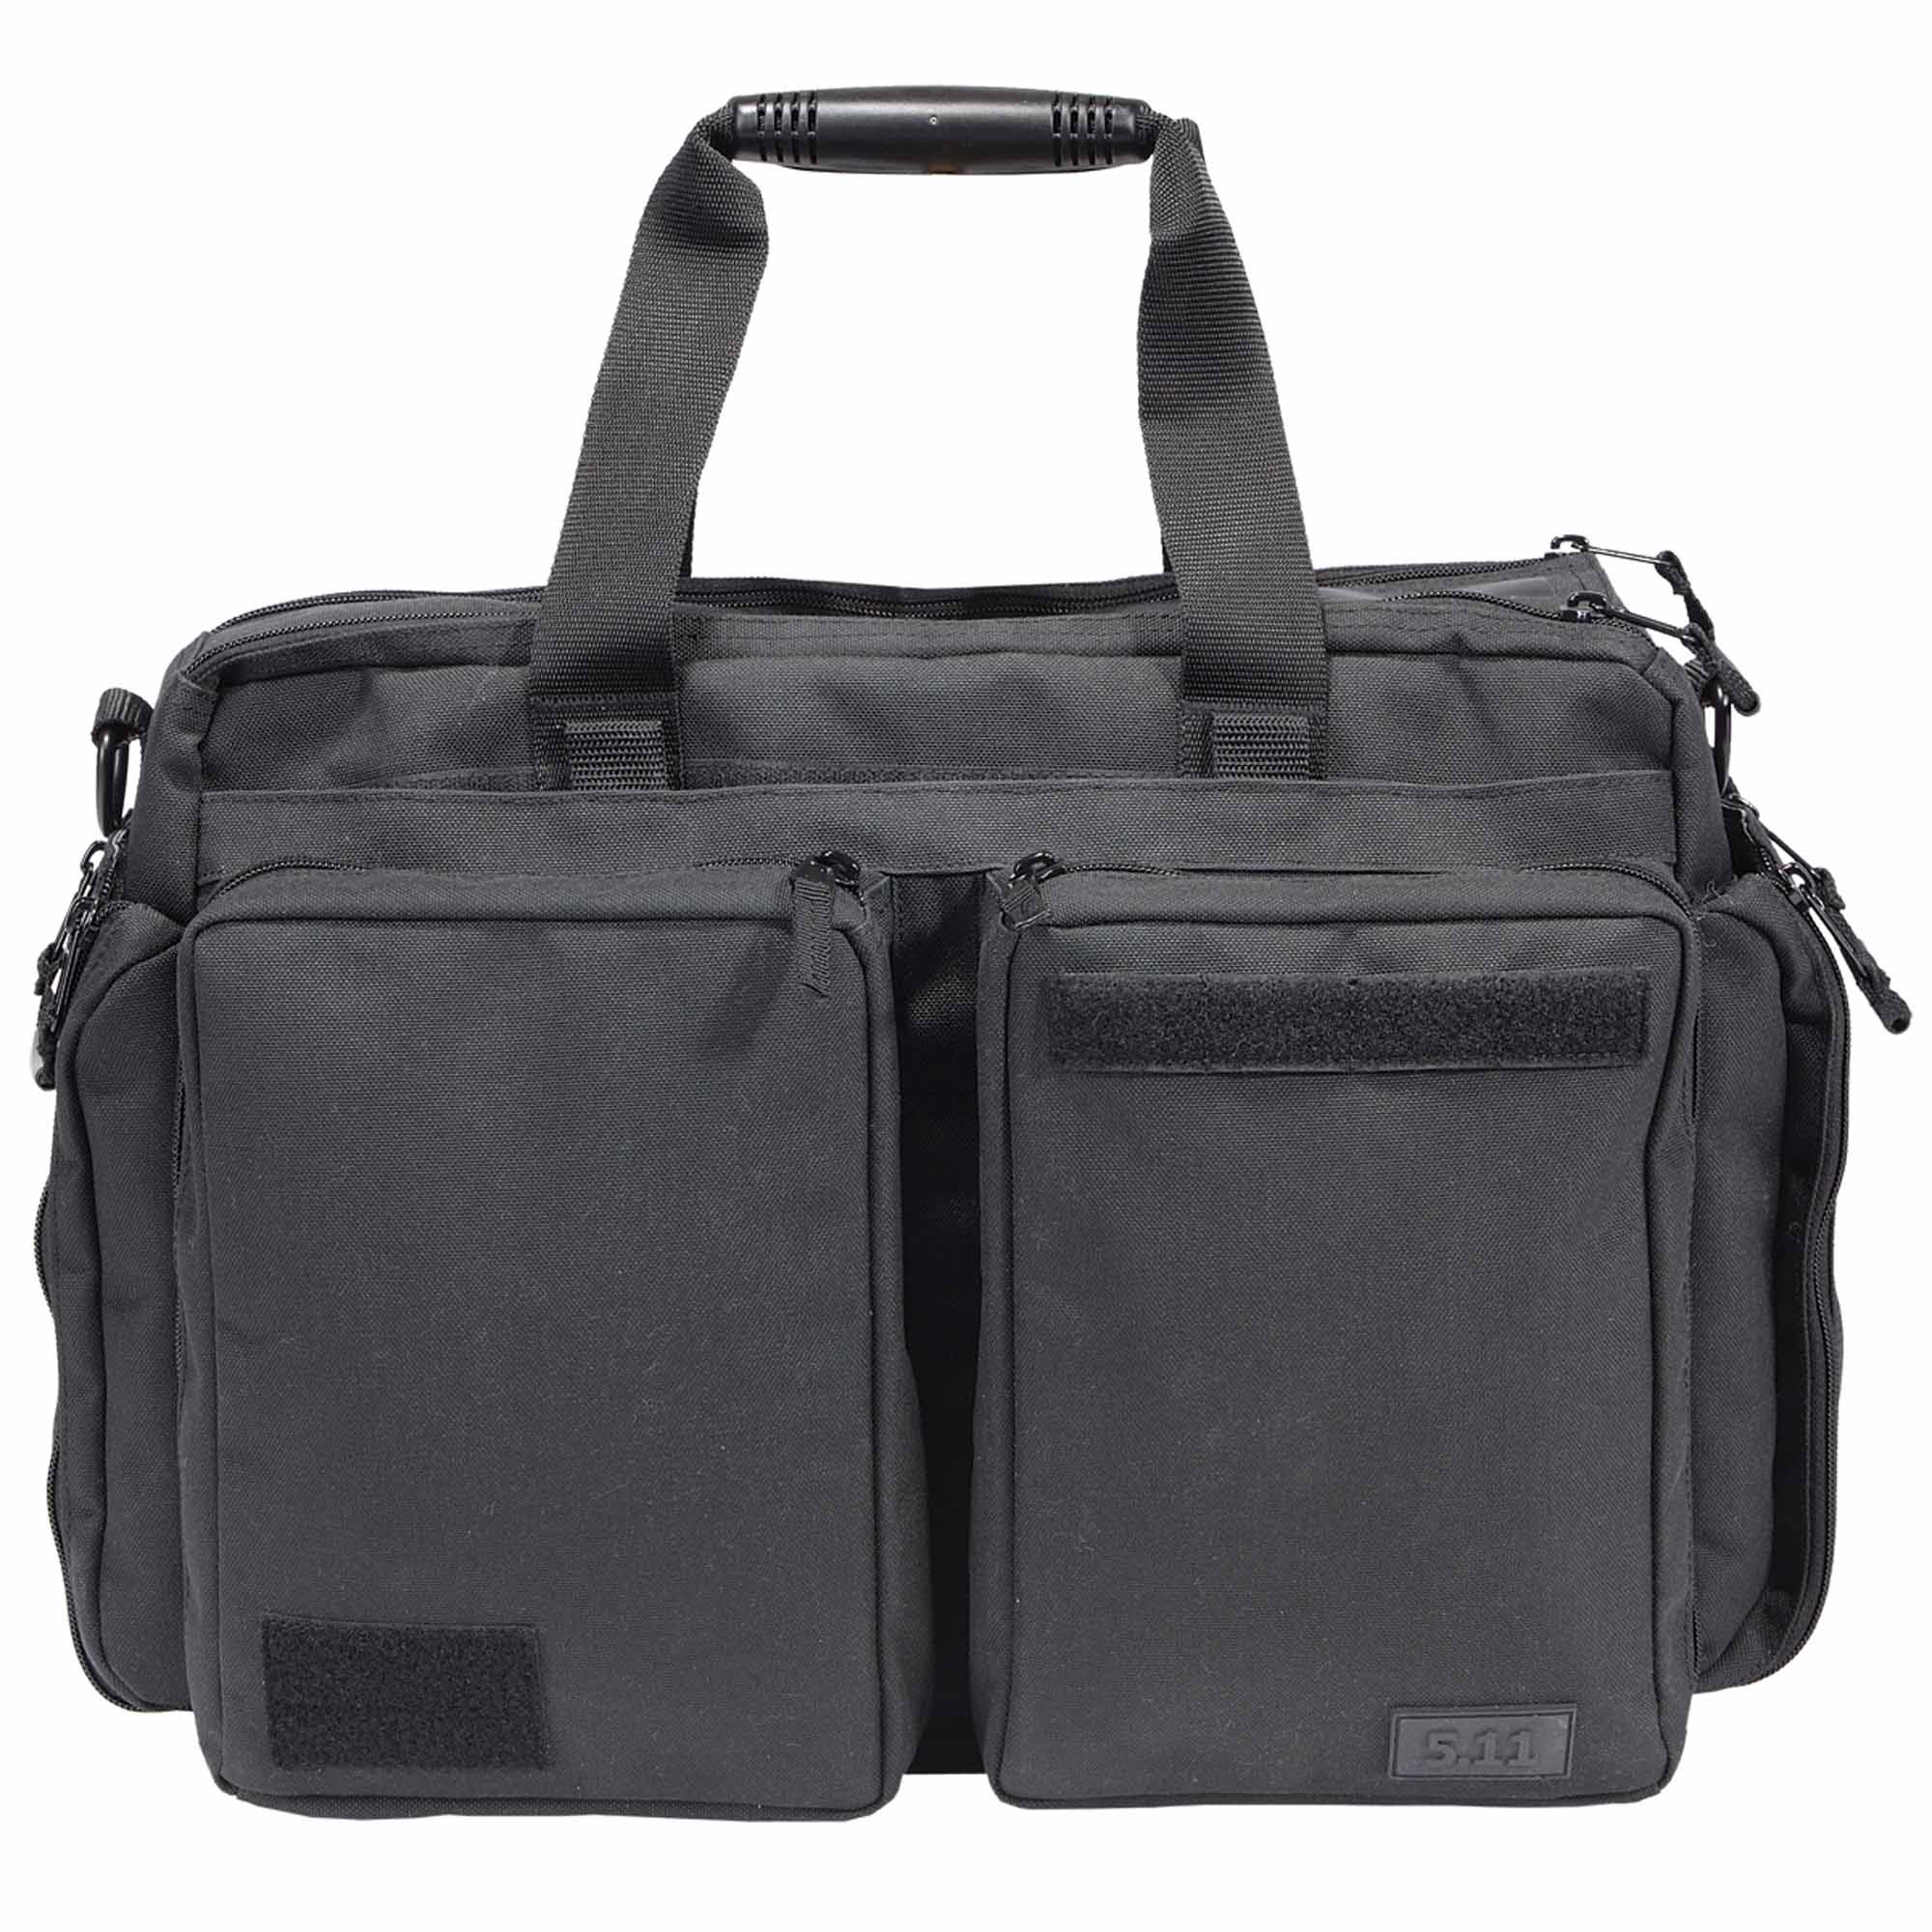 5.11 Tactical Briefcase - 5.11 Tactical 33540ae317